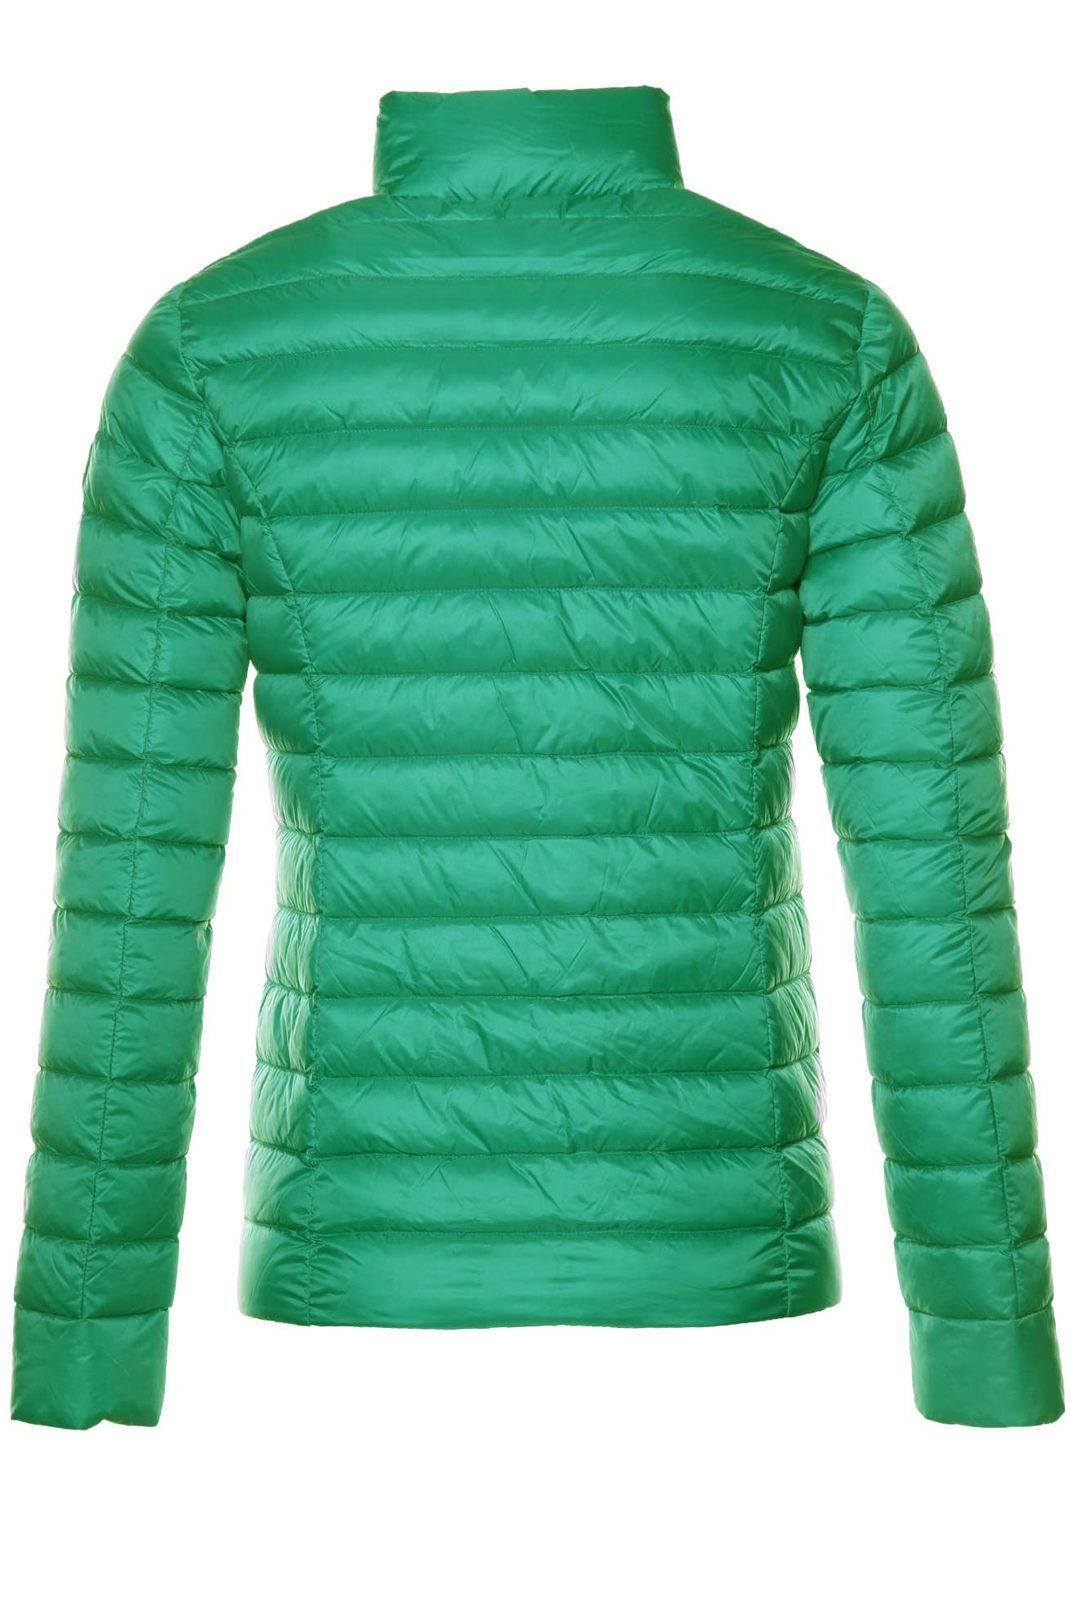 Blouson  Just over the top CHA 200 GREEN